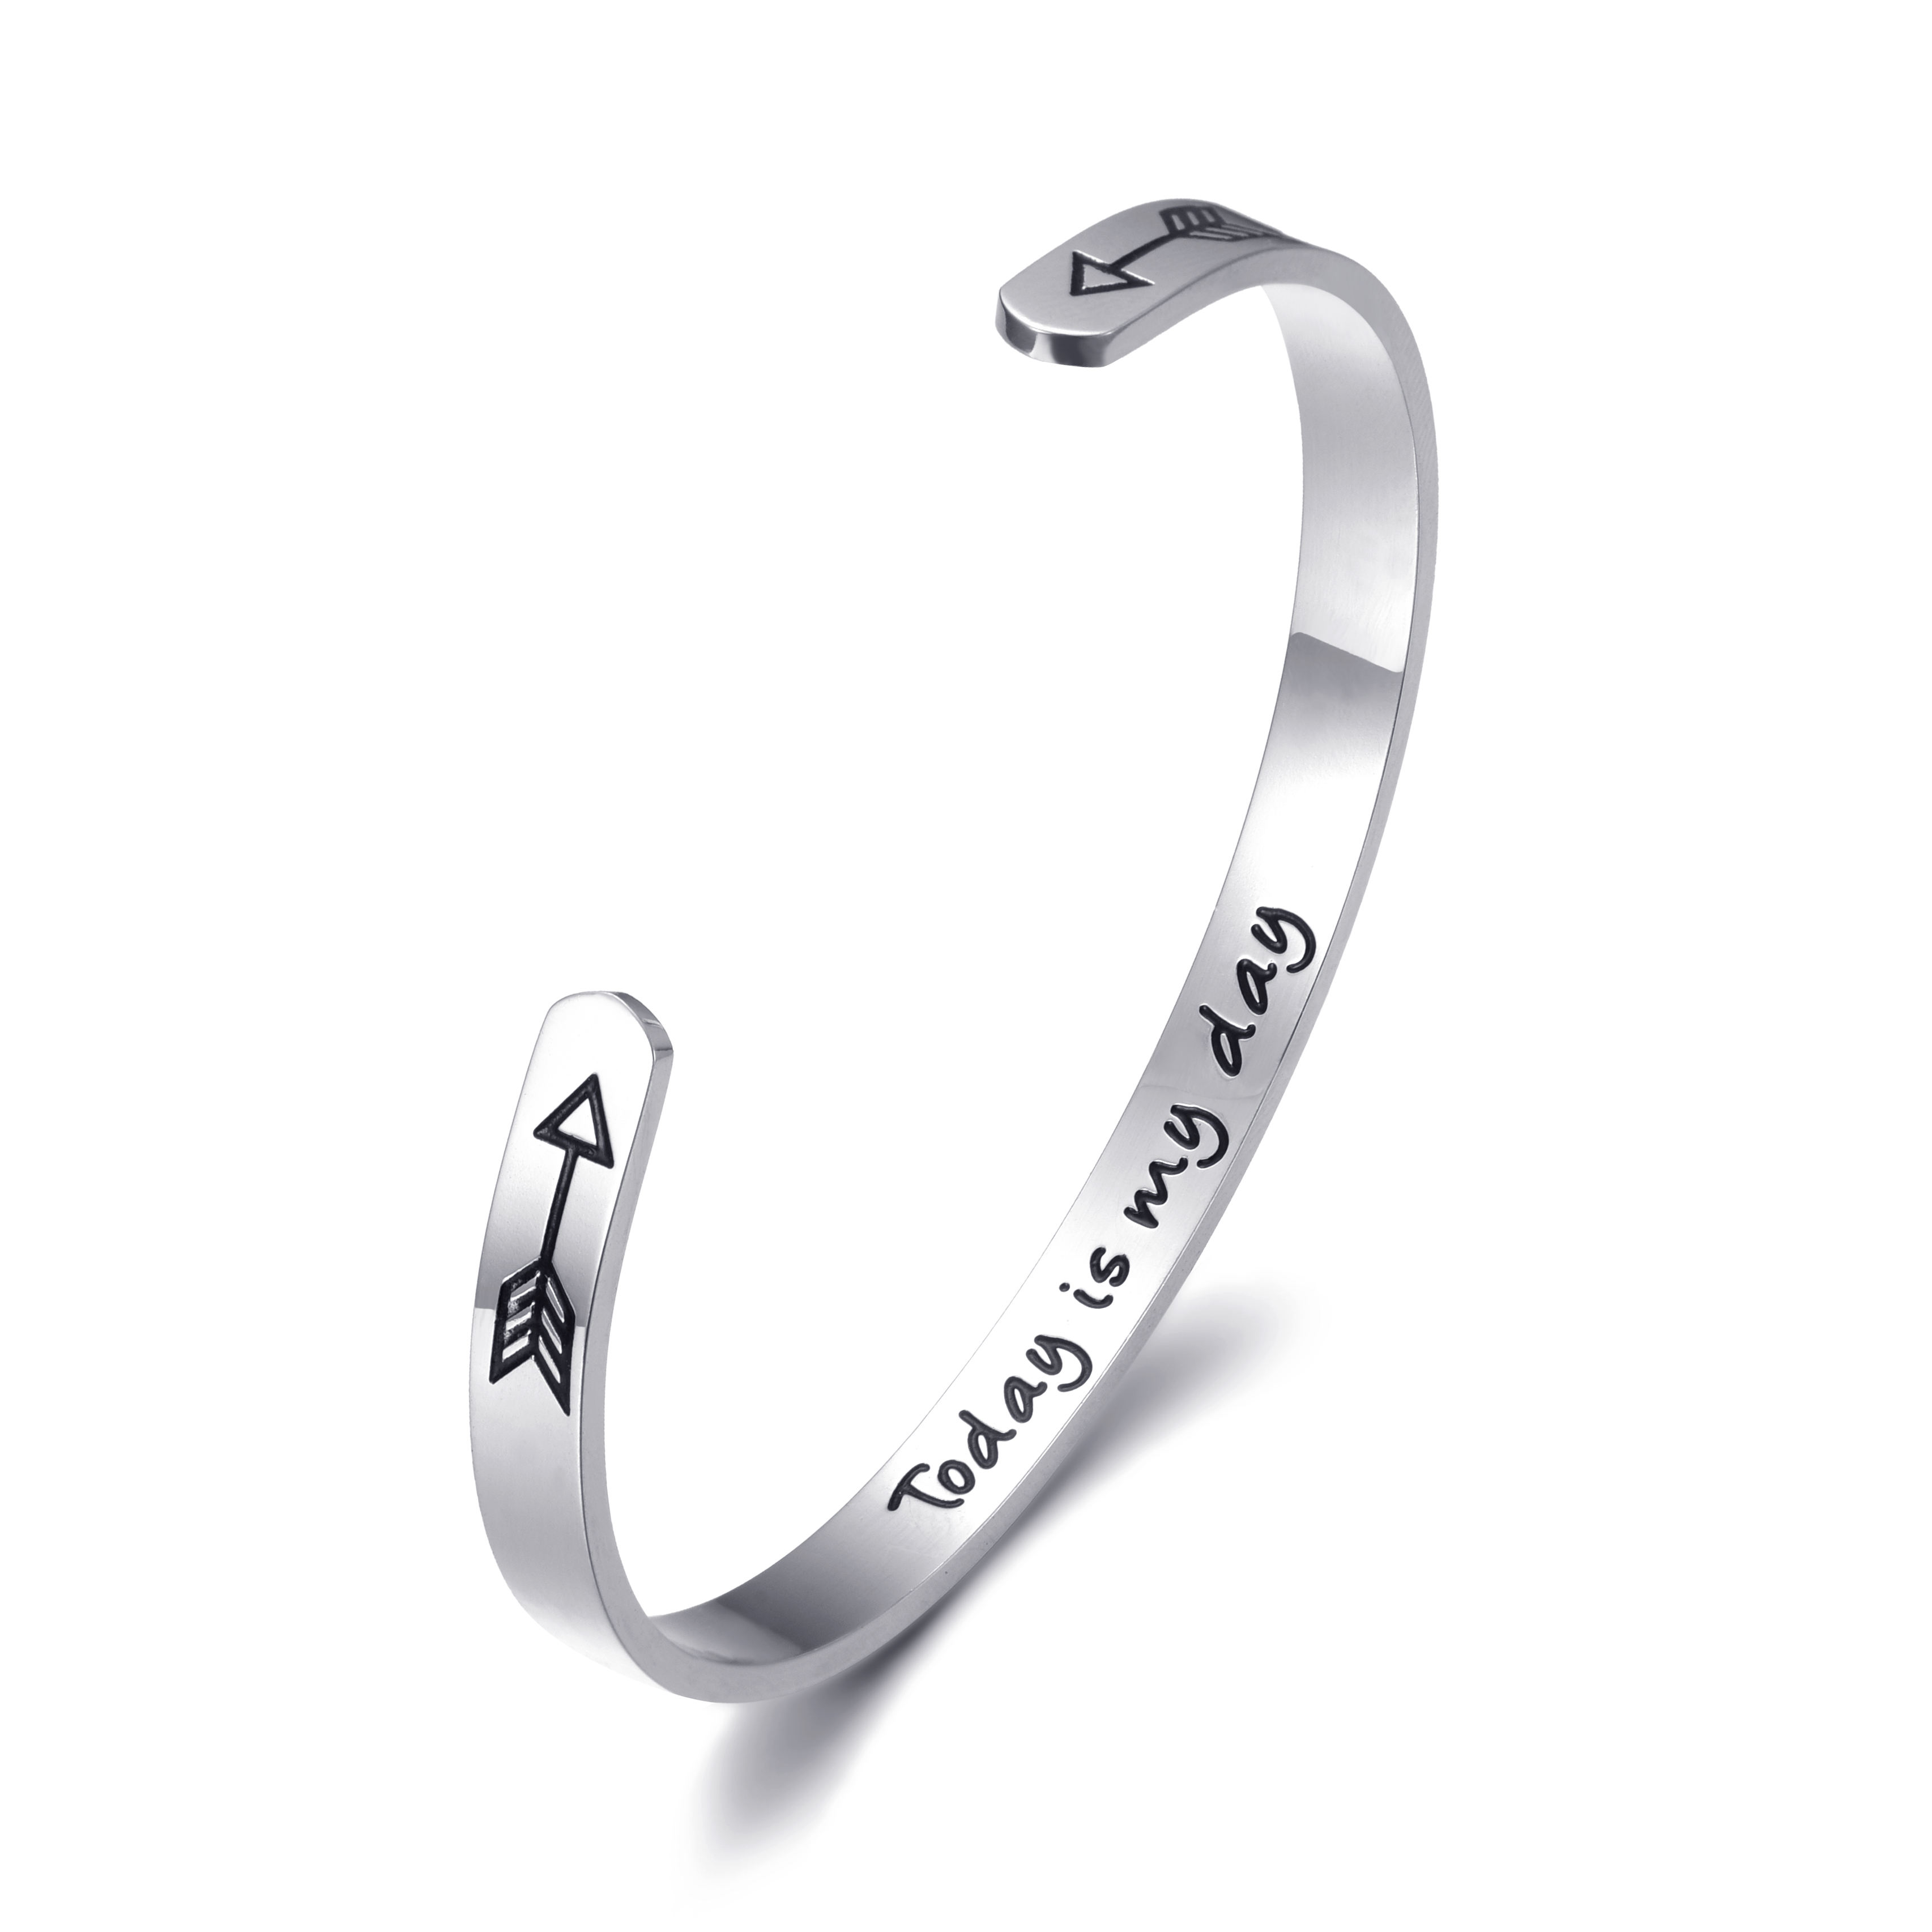 Ruigang Best Friends Bracelet Stainless Steel Jewelry Cuff Bangles Bracelets Friendship Mother's Day Gifts